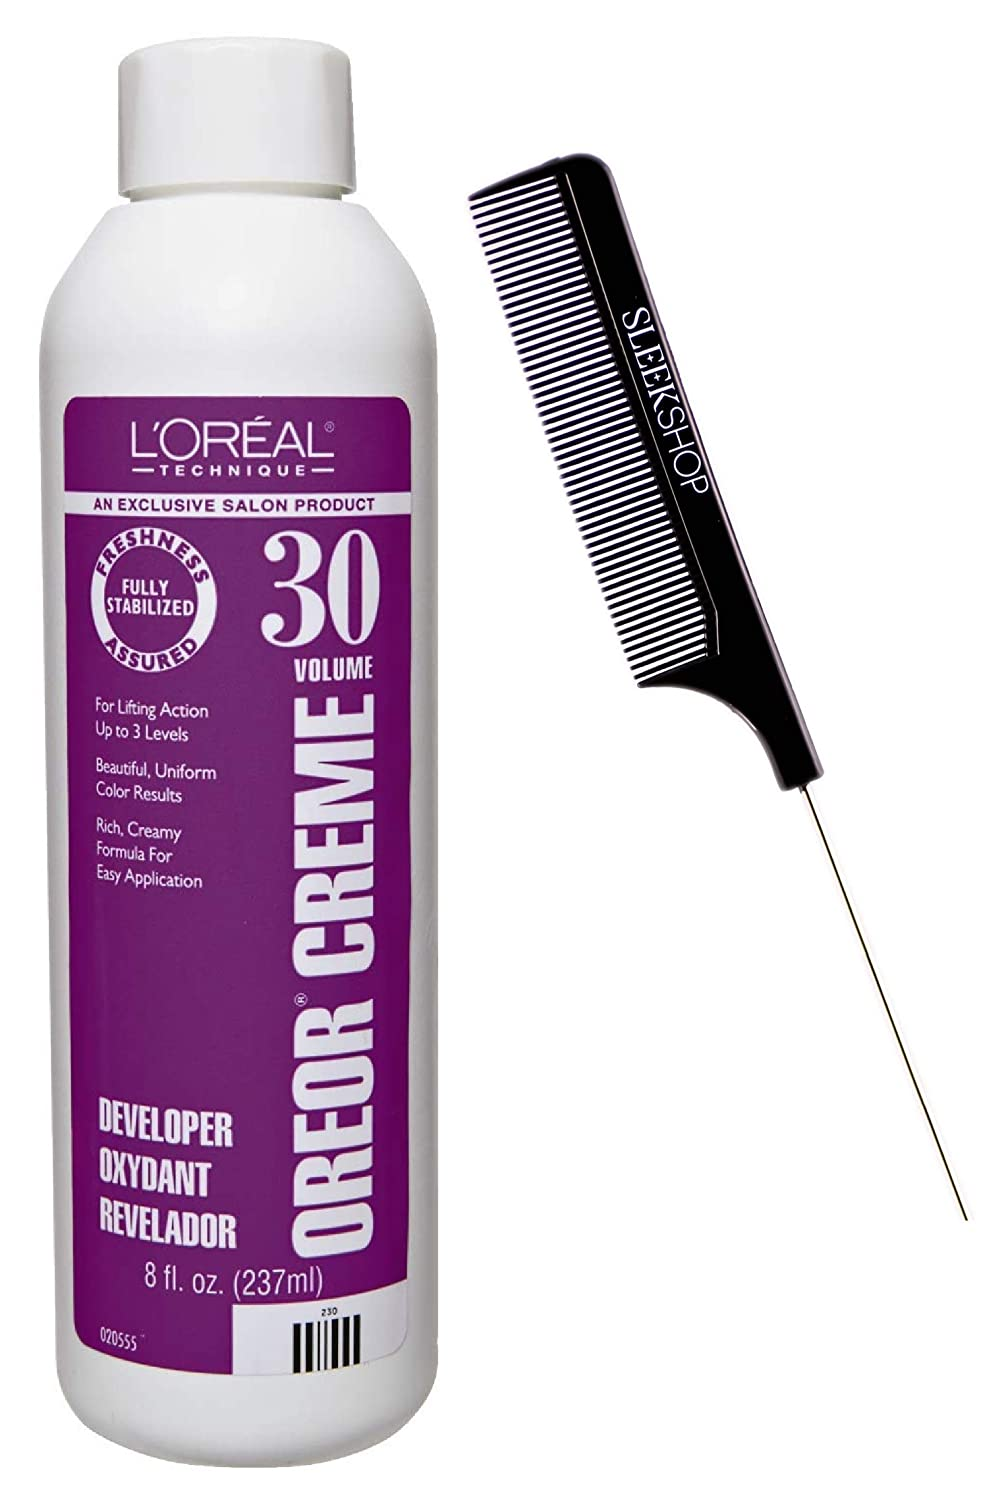 Excellence Technique OREOR Creme Developer Activator w Hair Dye Color National products for